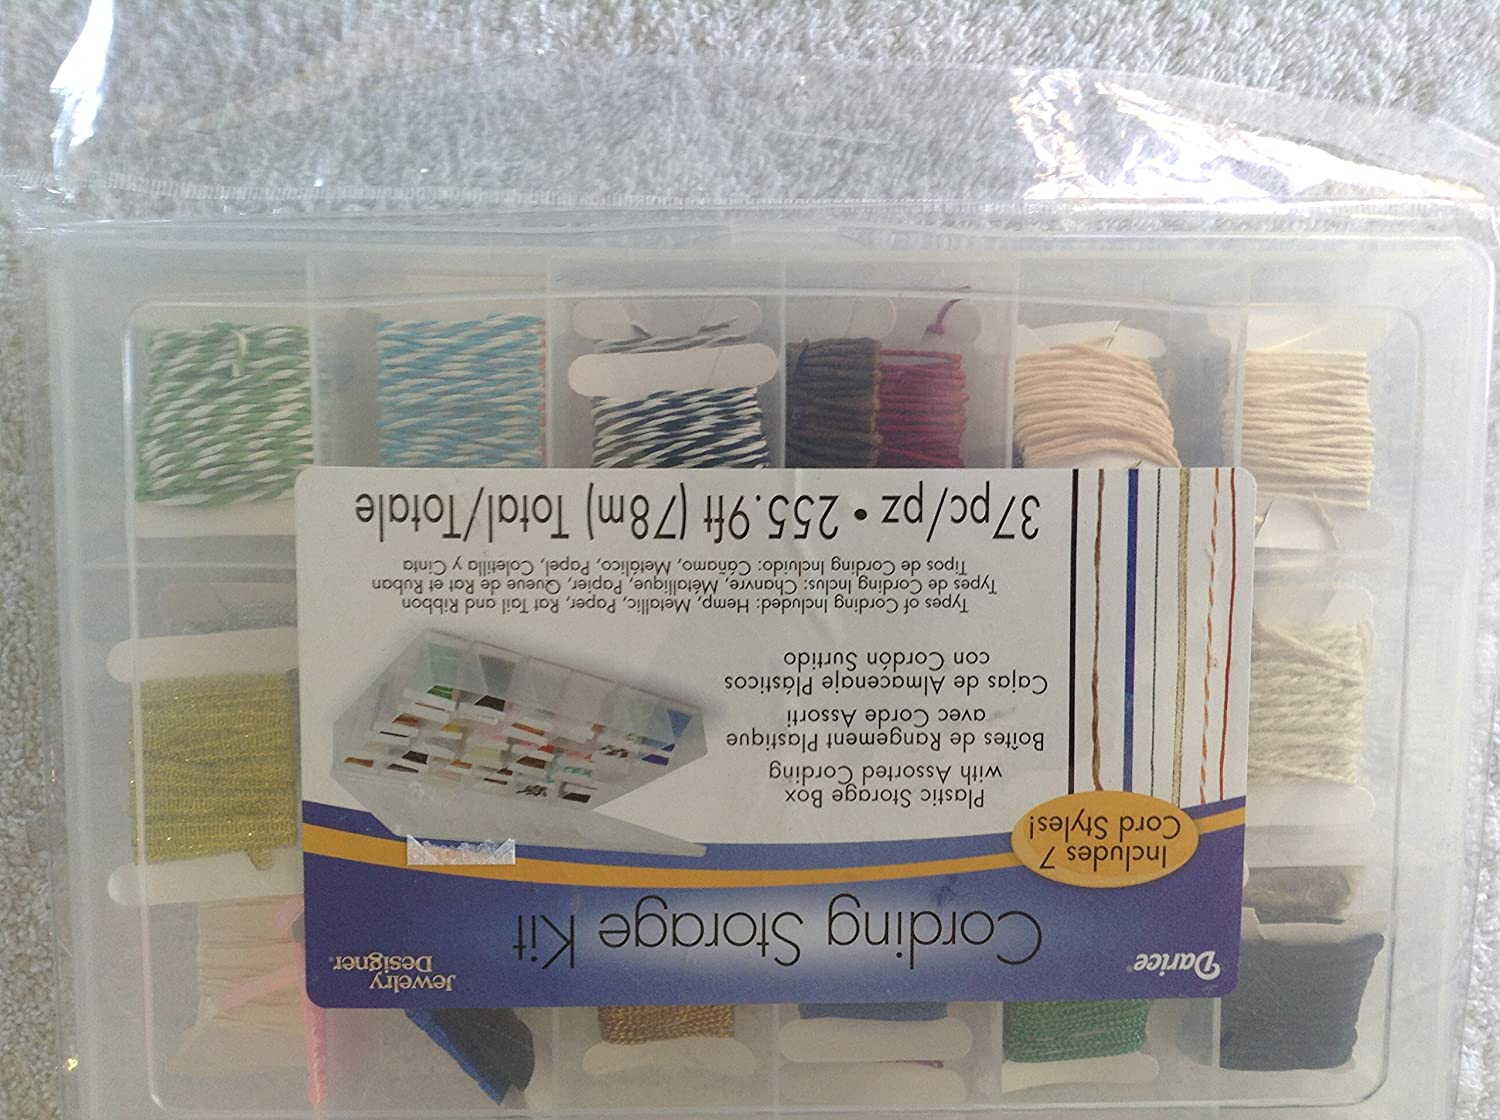 Amazon.com: Darice Jewelry Designer Cording Storage Kit with Assorted Cording